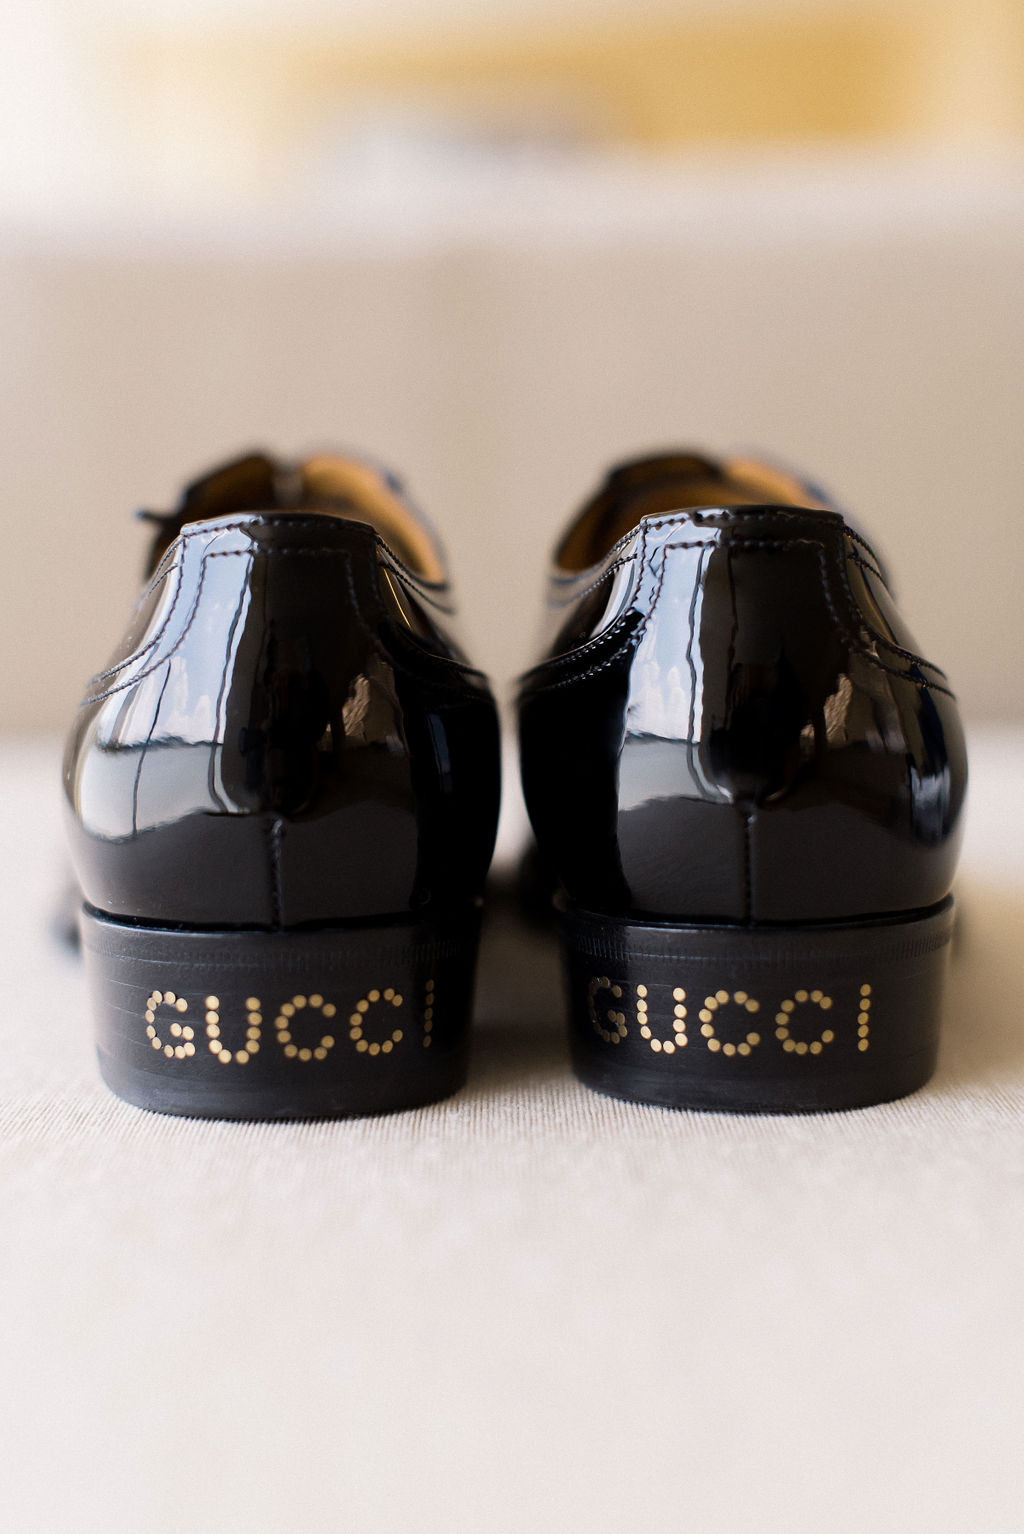 groomsmen shoes with gucci decal on heels